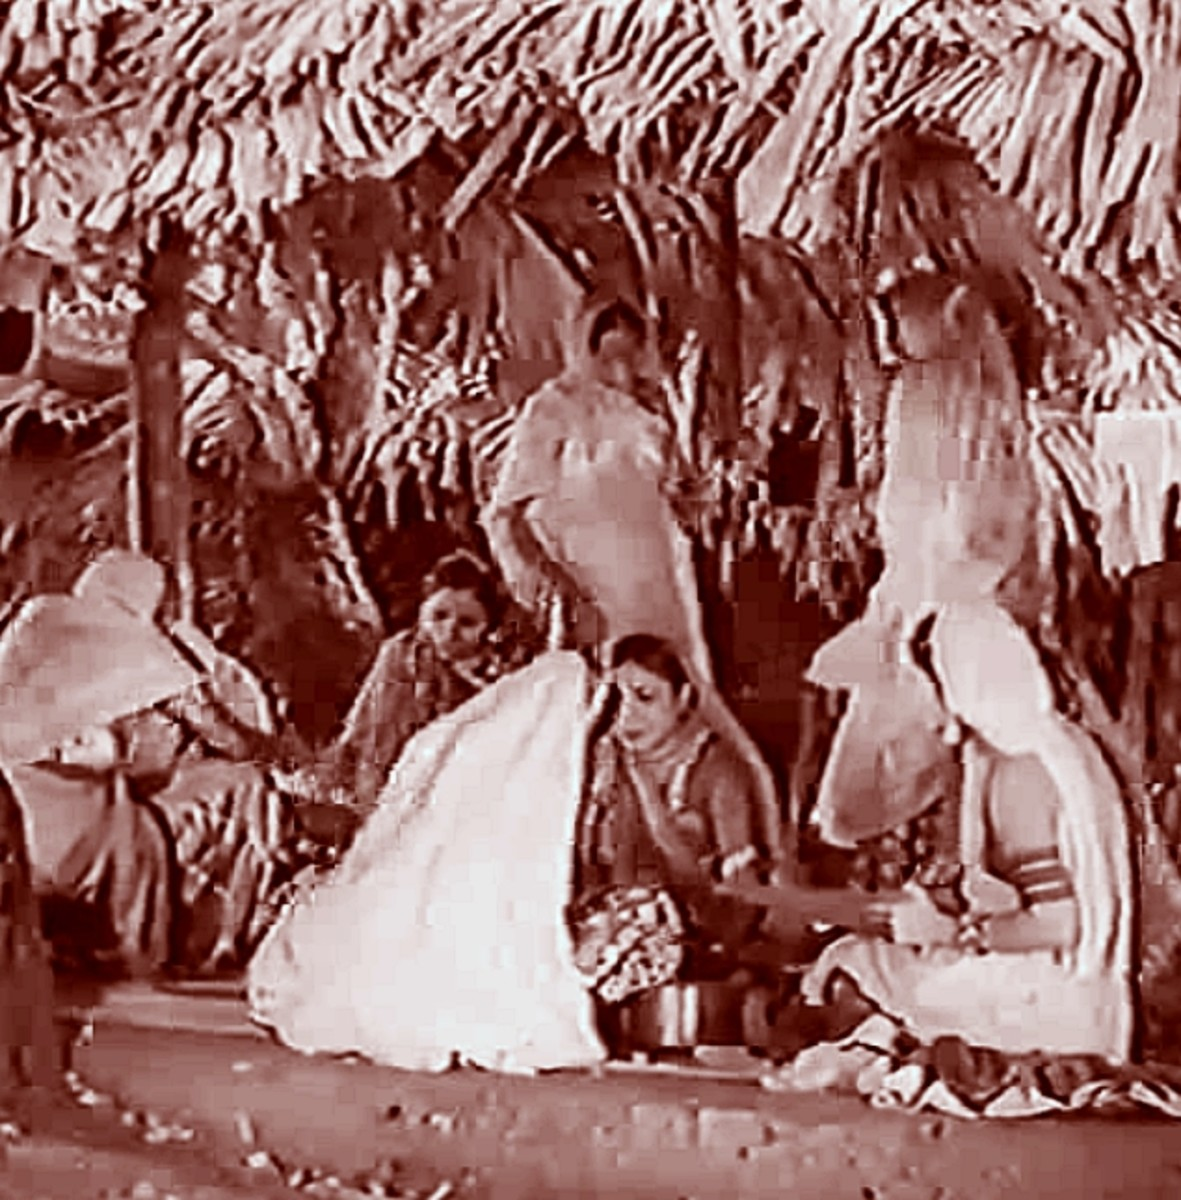 A folk song from Achhut Kanya in 1934.  Women singing in the village while doing the daily chores:  as original as a folk song can get.